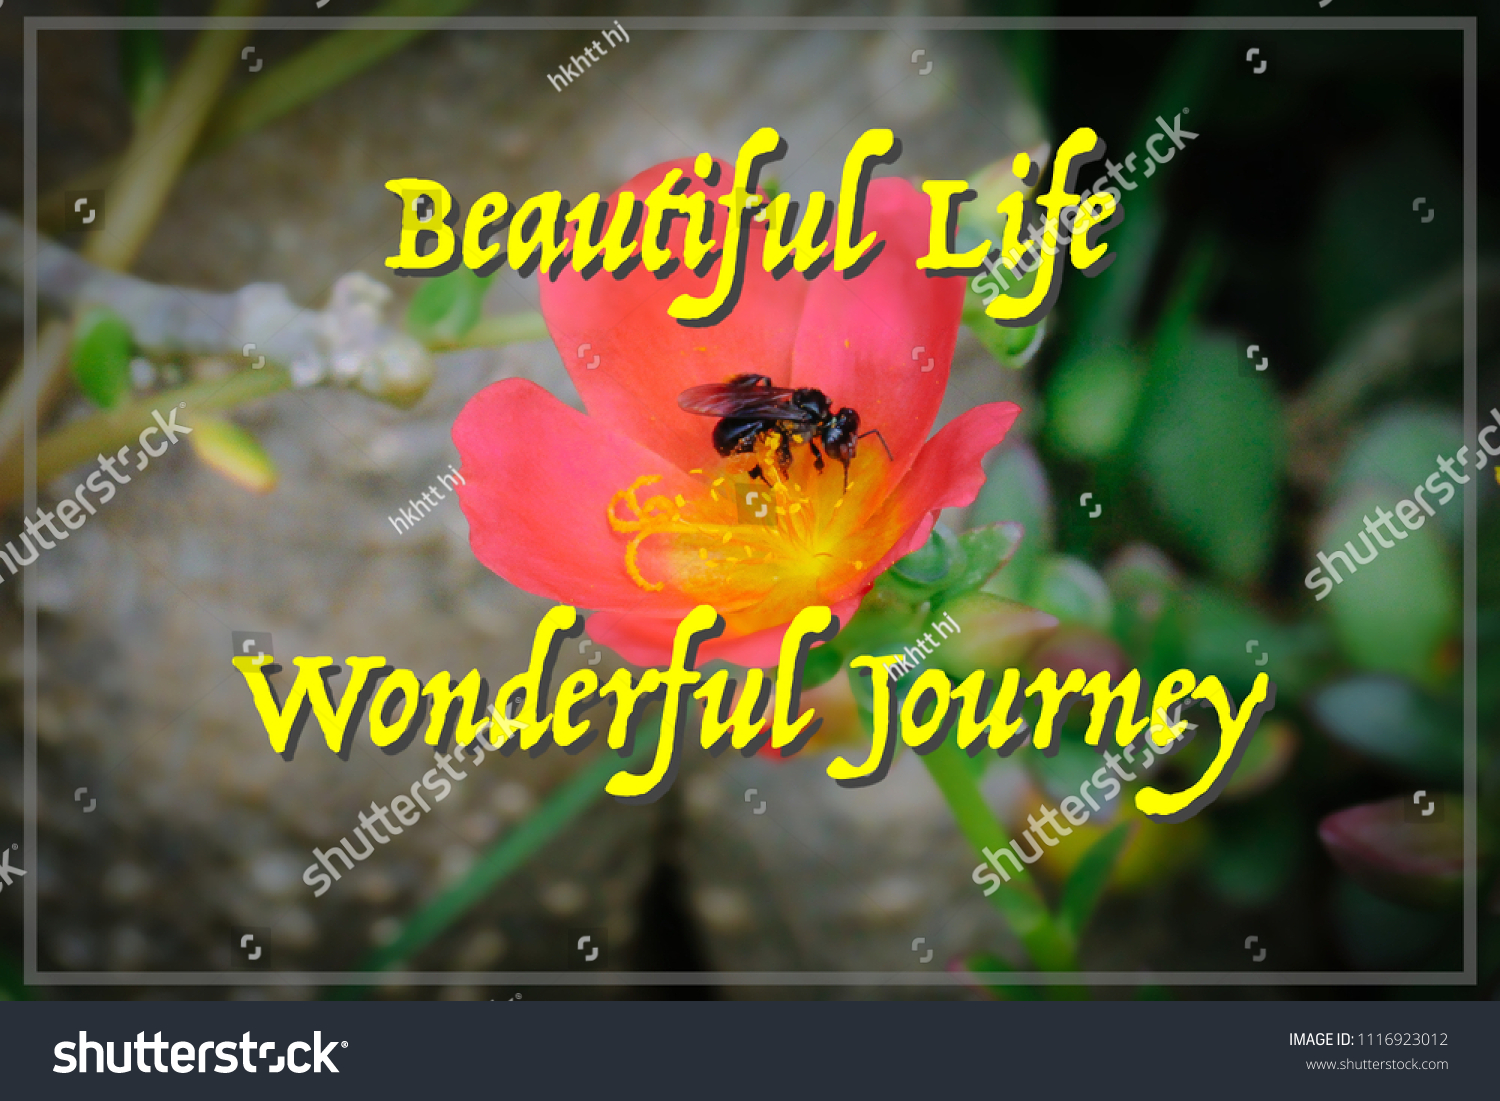 Best Ever Life Quotes Nature